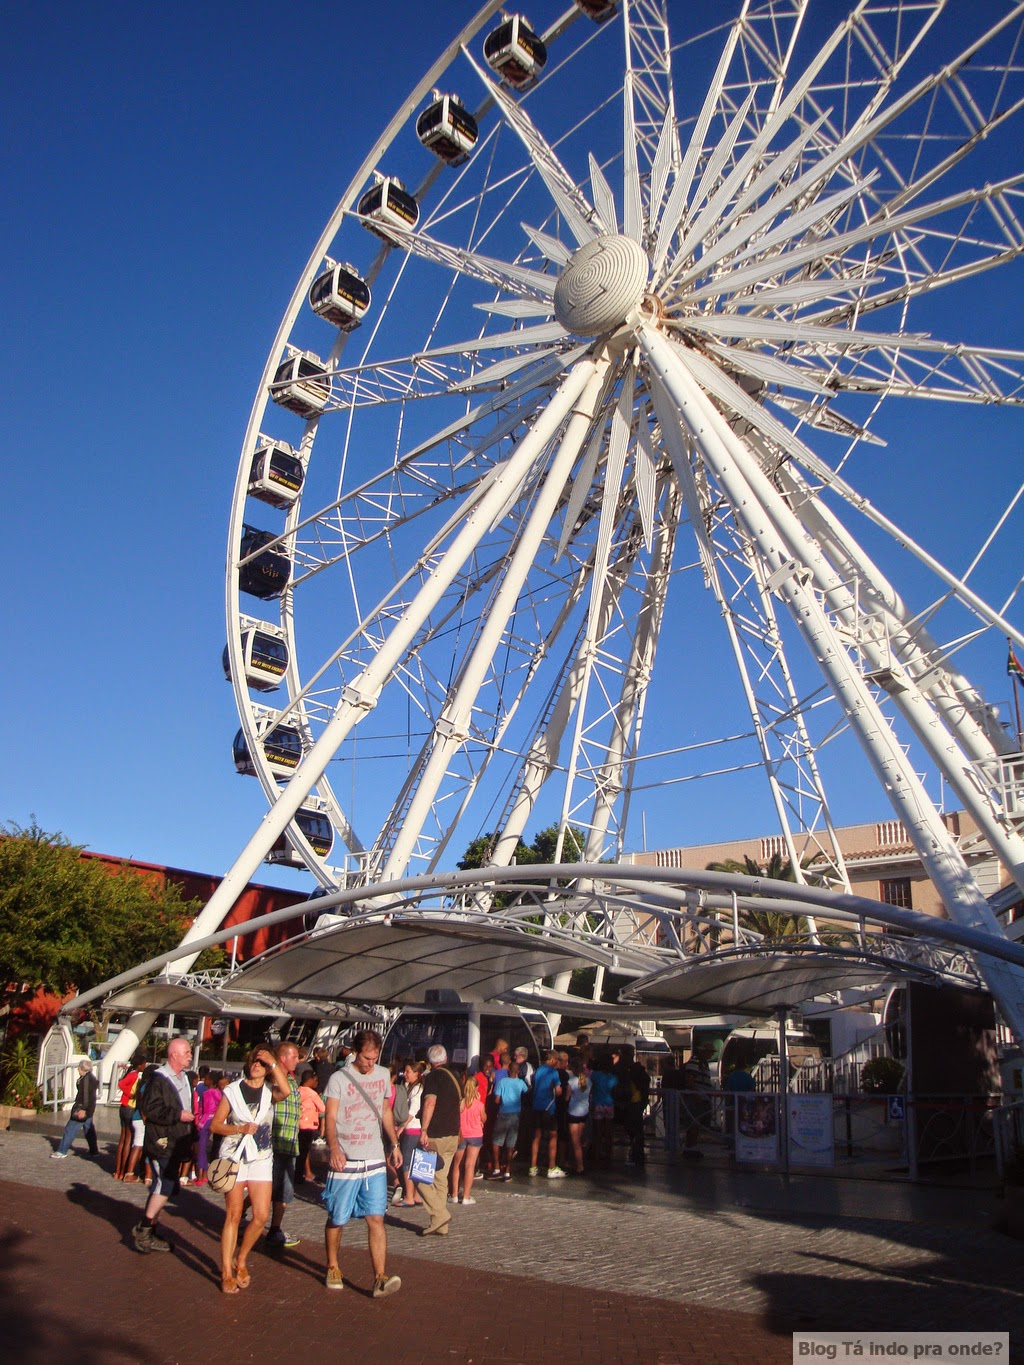 Roda-gigante Wheel of Excellence - Cidade do Cabo